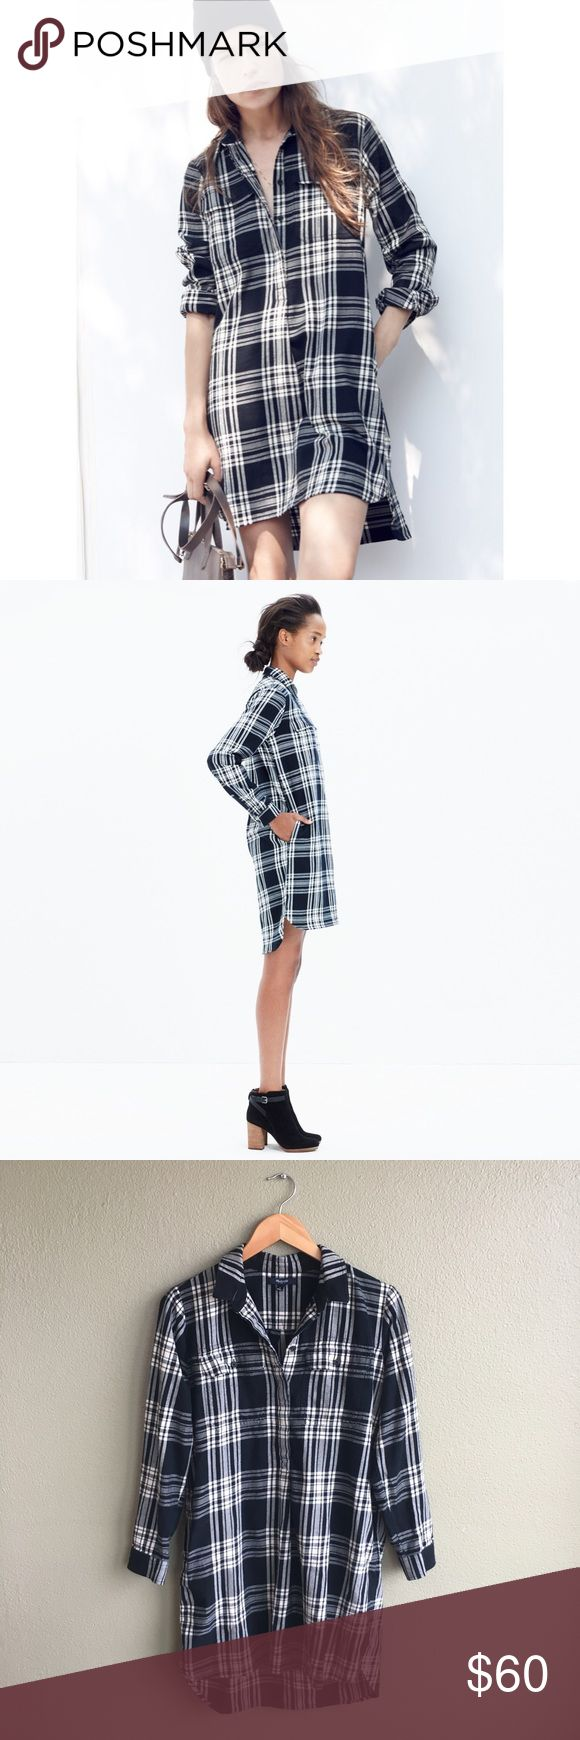 Madewell Daywalk Plaid Flannel Shirt Dress No trades! EXCELLENT CONDITION! Black and white flannel dress from Madewell. 100% cotton. Size small. Madewell Dresses